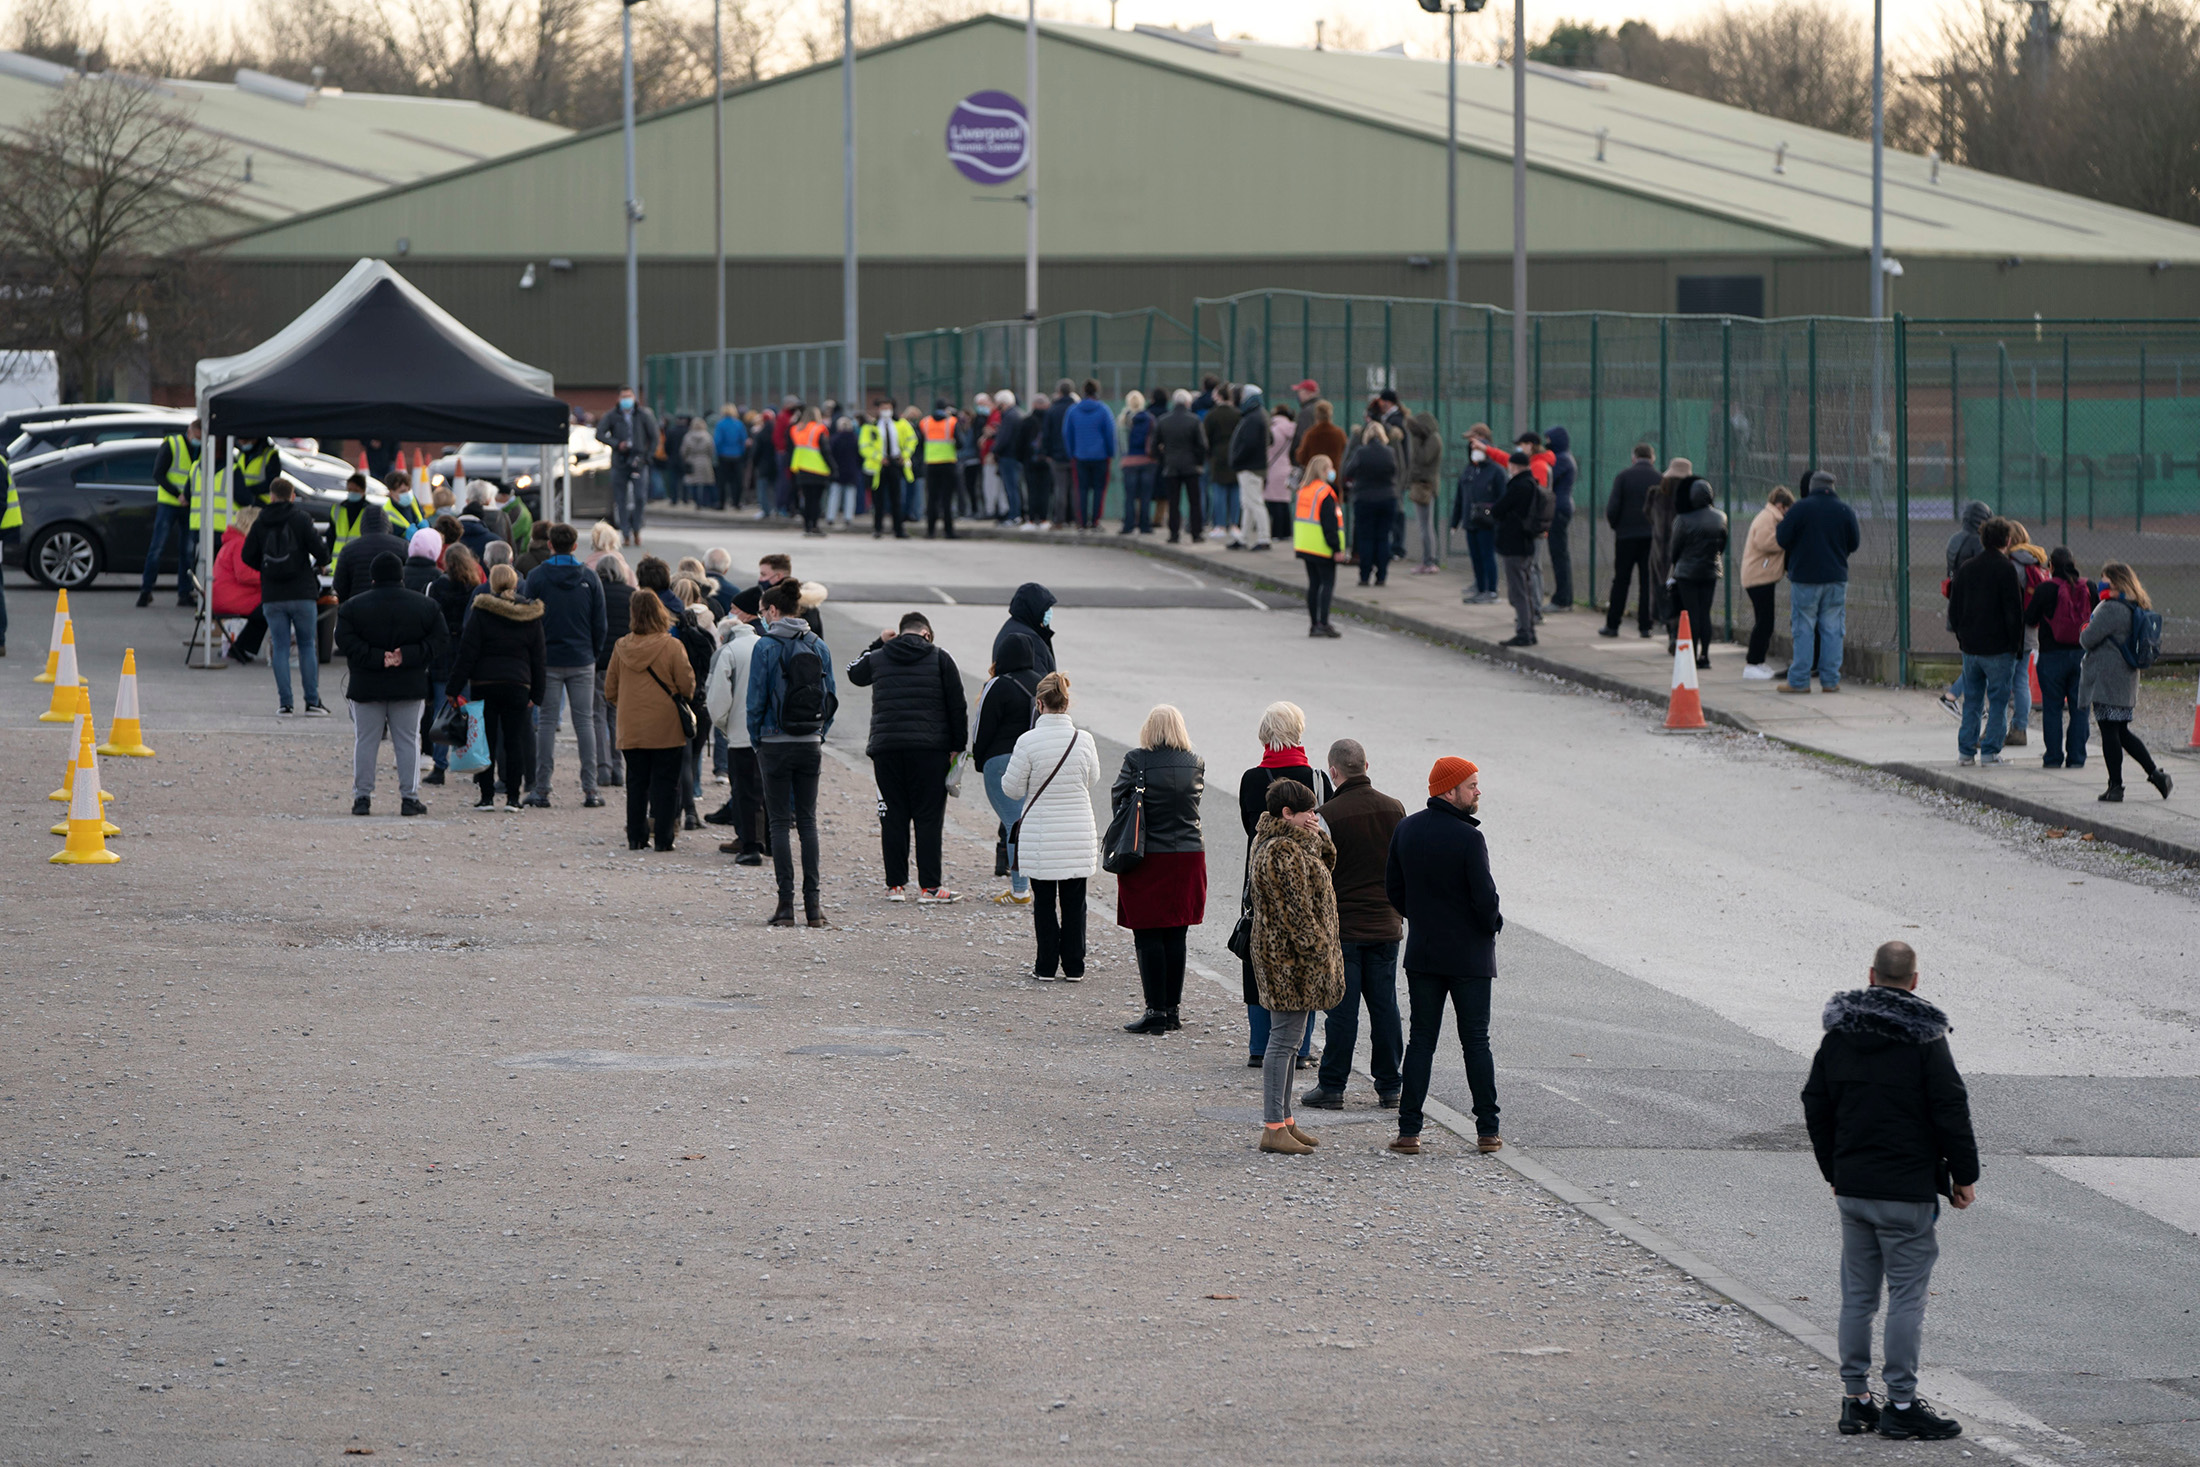 People wait in line at a Covid-19 testing center in Liverpool, England, on November 6, 2020.